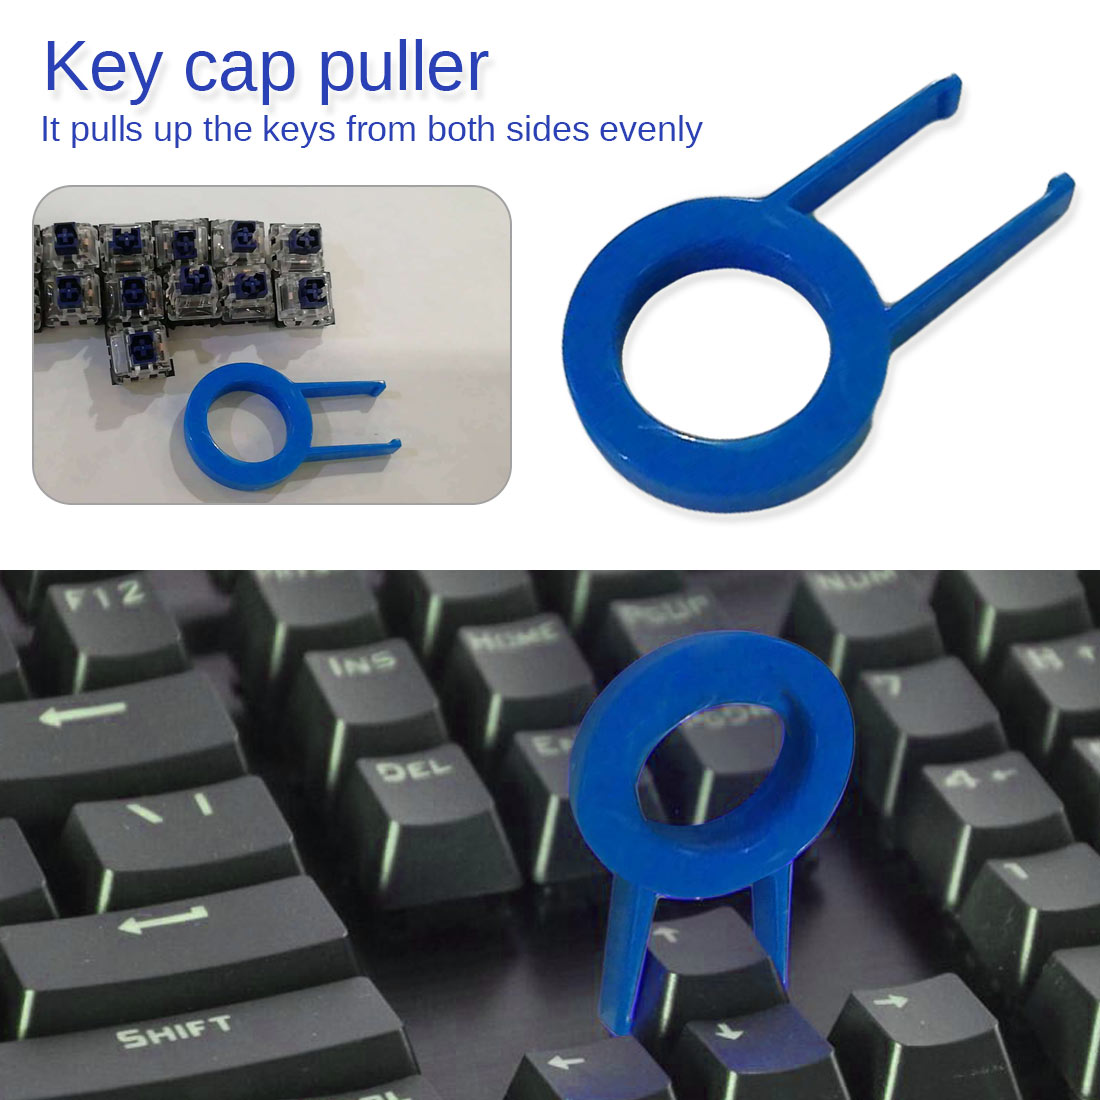 Drop Ship&Wholesale Mechanical Keyboard Keycap Puller Remover For Keyboards Key Cap Fixing Tool Random Color Black Or Blue